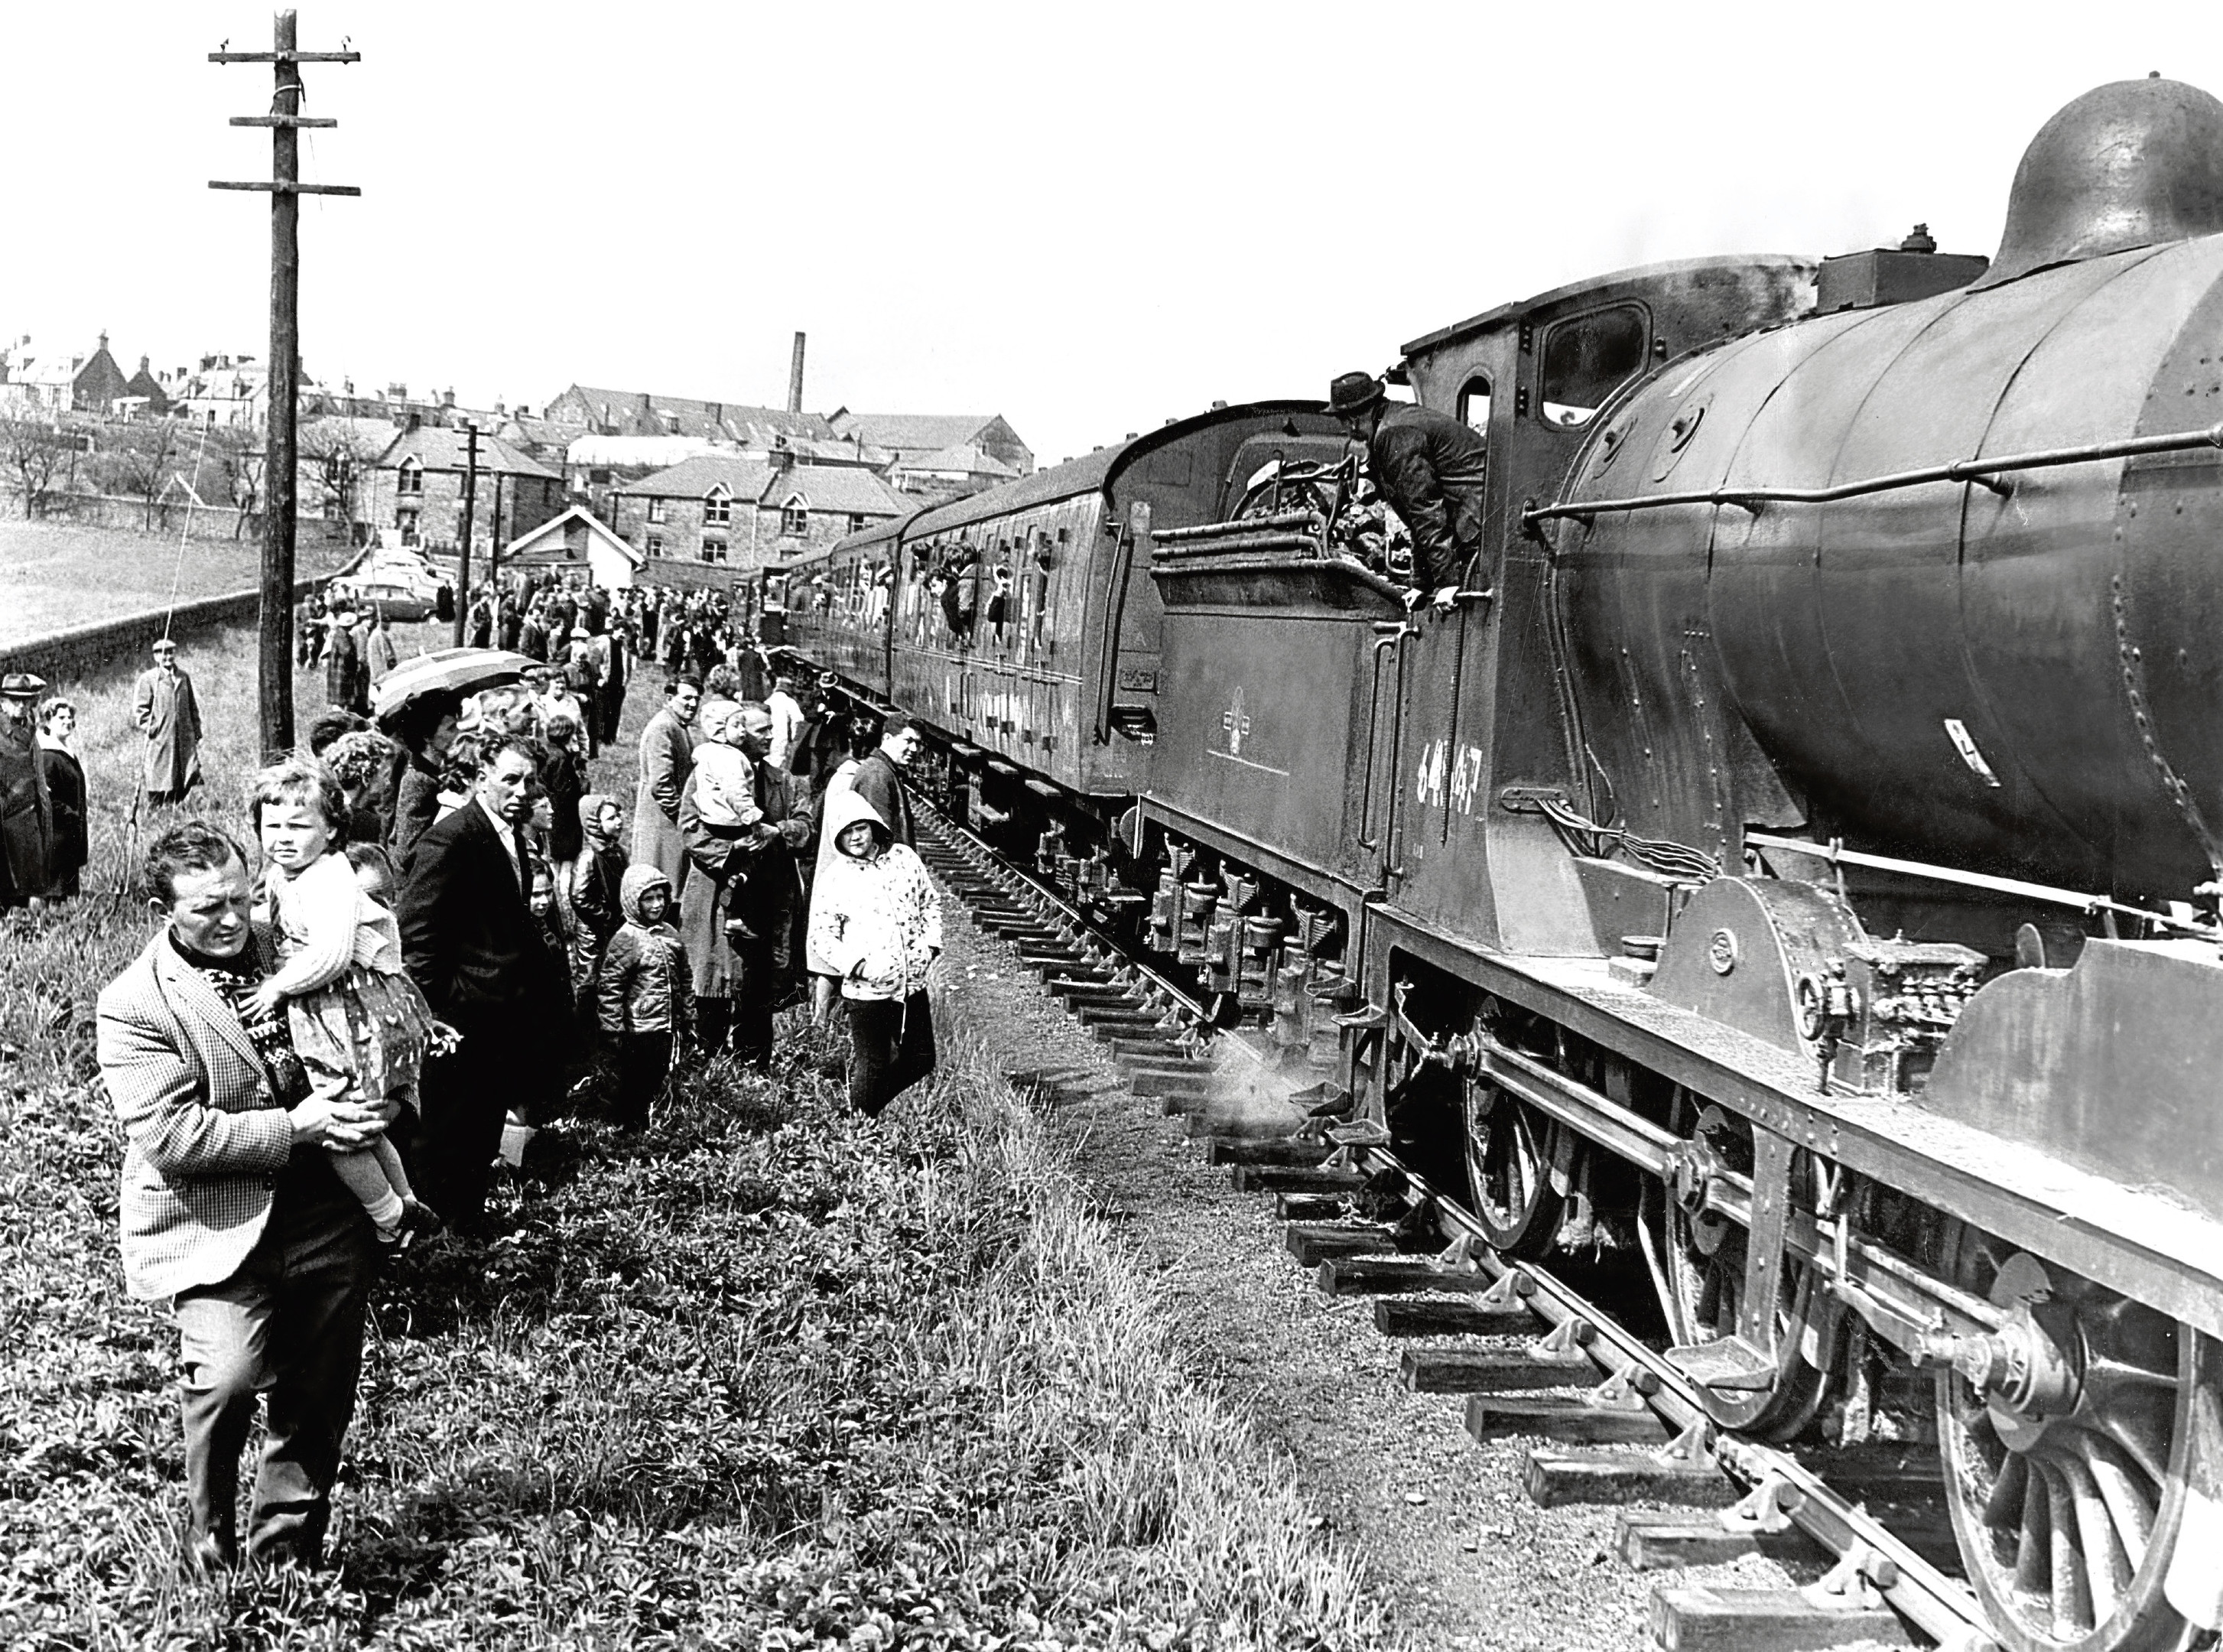 A crowd young and old gathered to watch the last train leave Inverbervie bound for Montrose